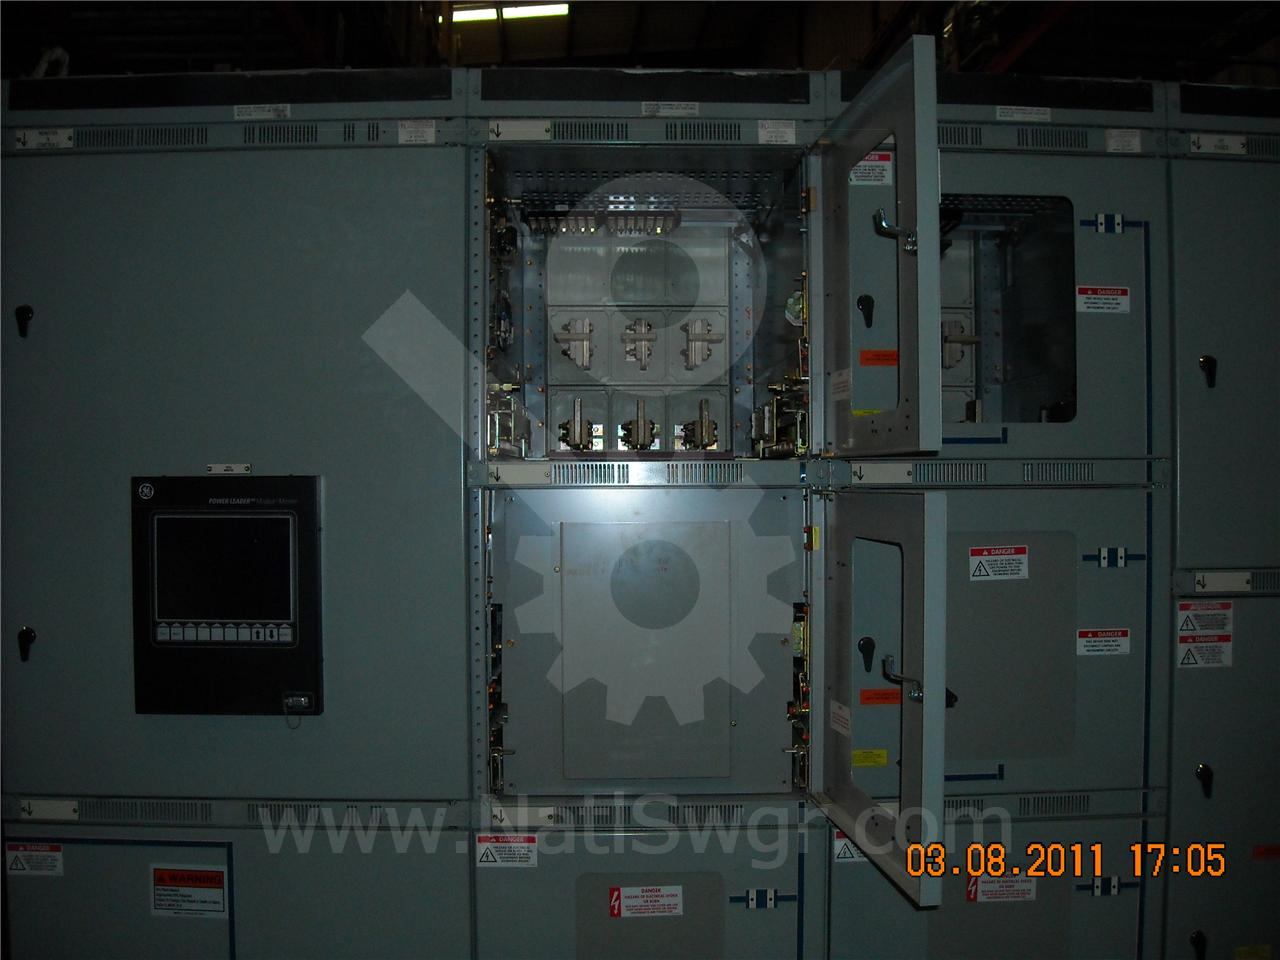 AKD-8 4000A GE / General Electric AKD-8 FUSED INDOOR SWITCHGEAR 4-1600A FEEDER